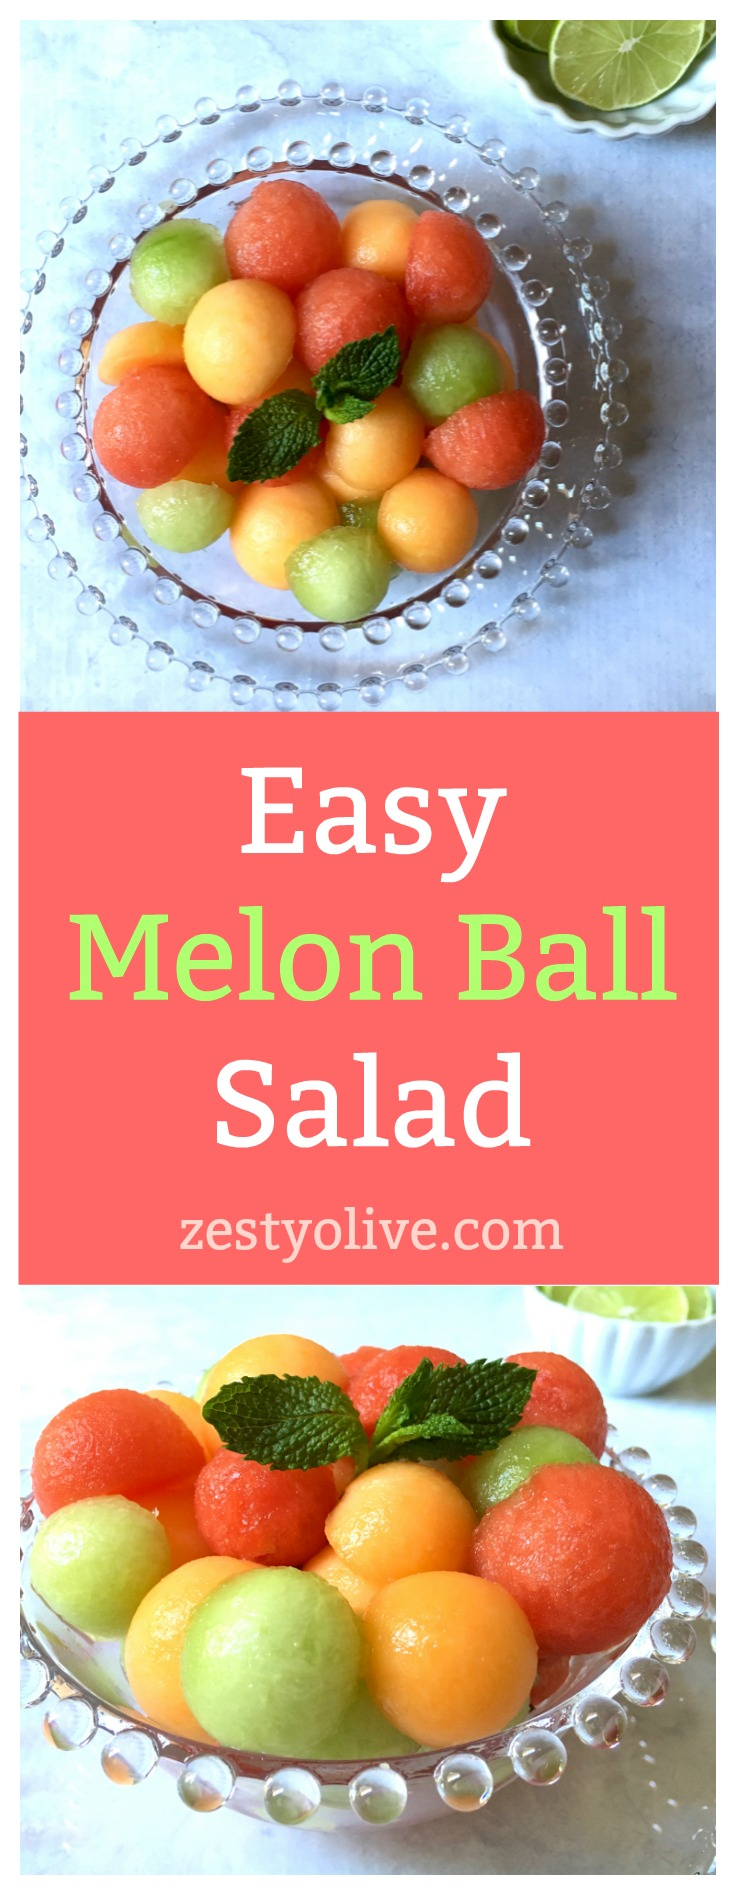 Easy Melon Ball Salad